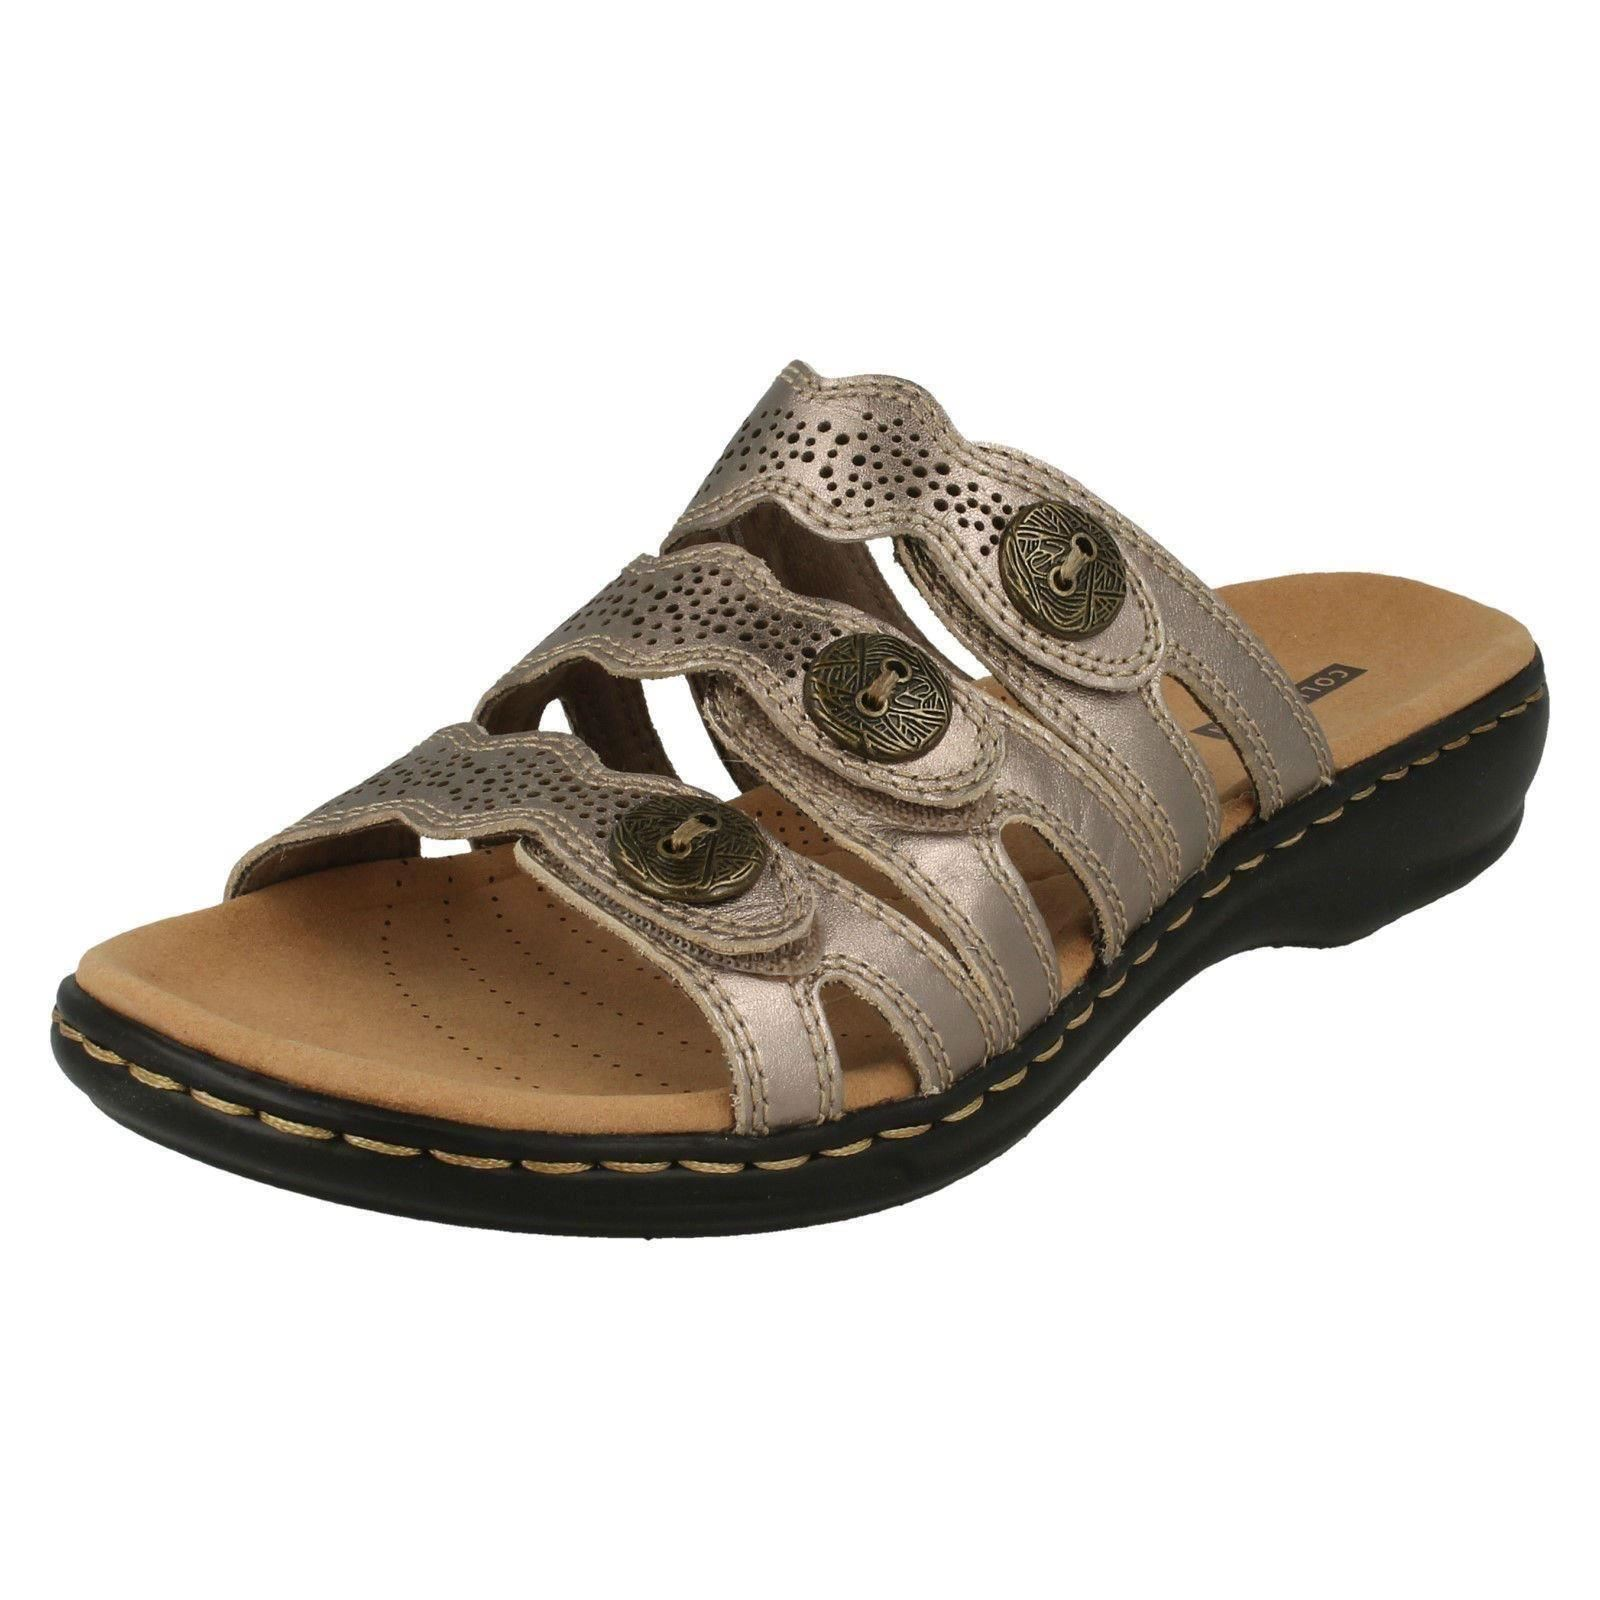 c8fb52e9116d Clarks Ladies Mule Sandals Leisa Grace UK 6 eu 38.5 us 8 Pewter